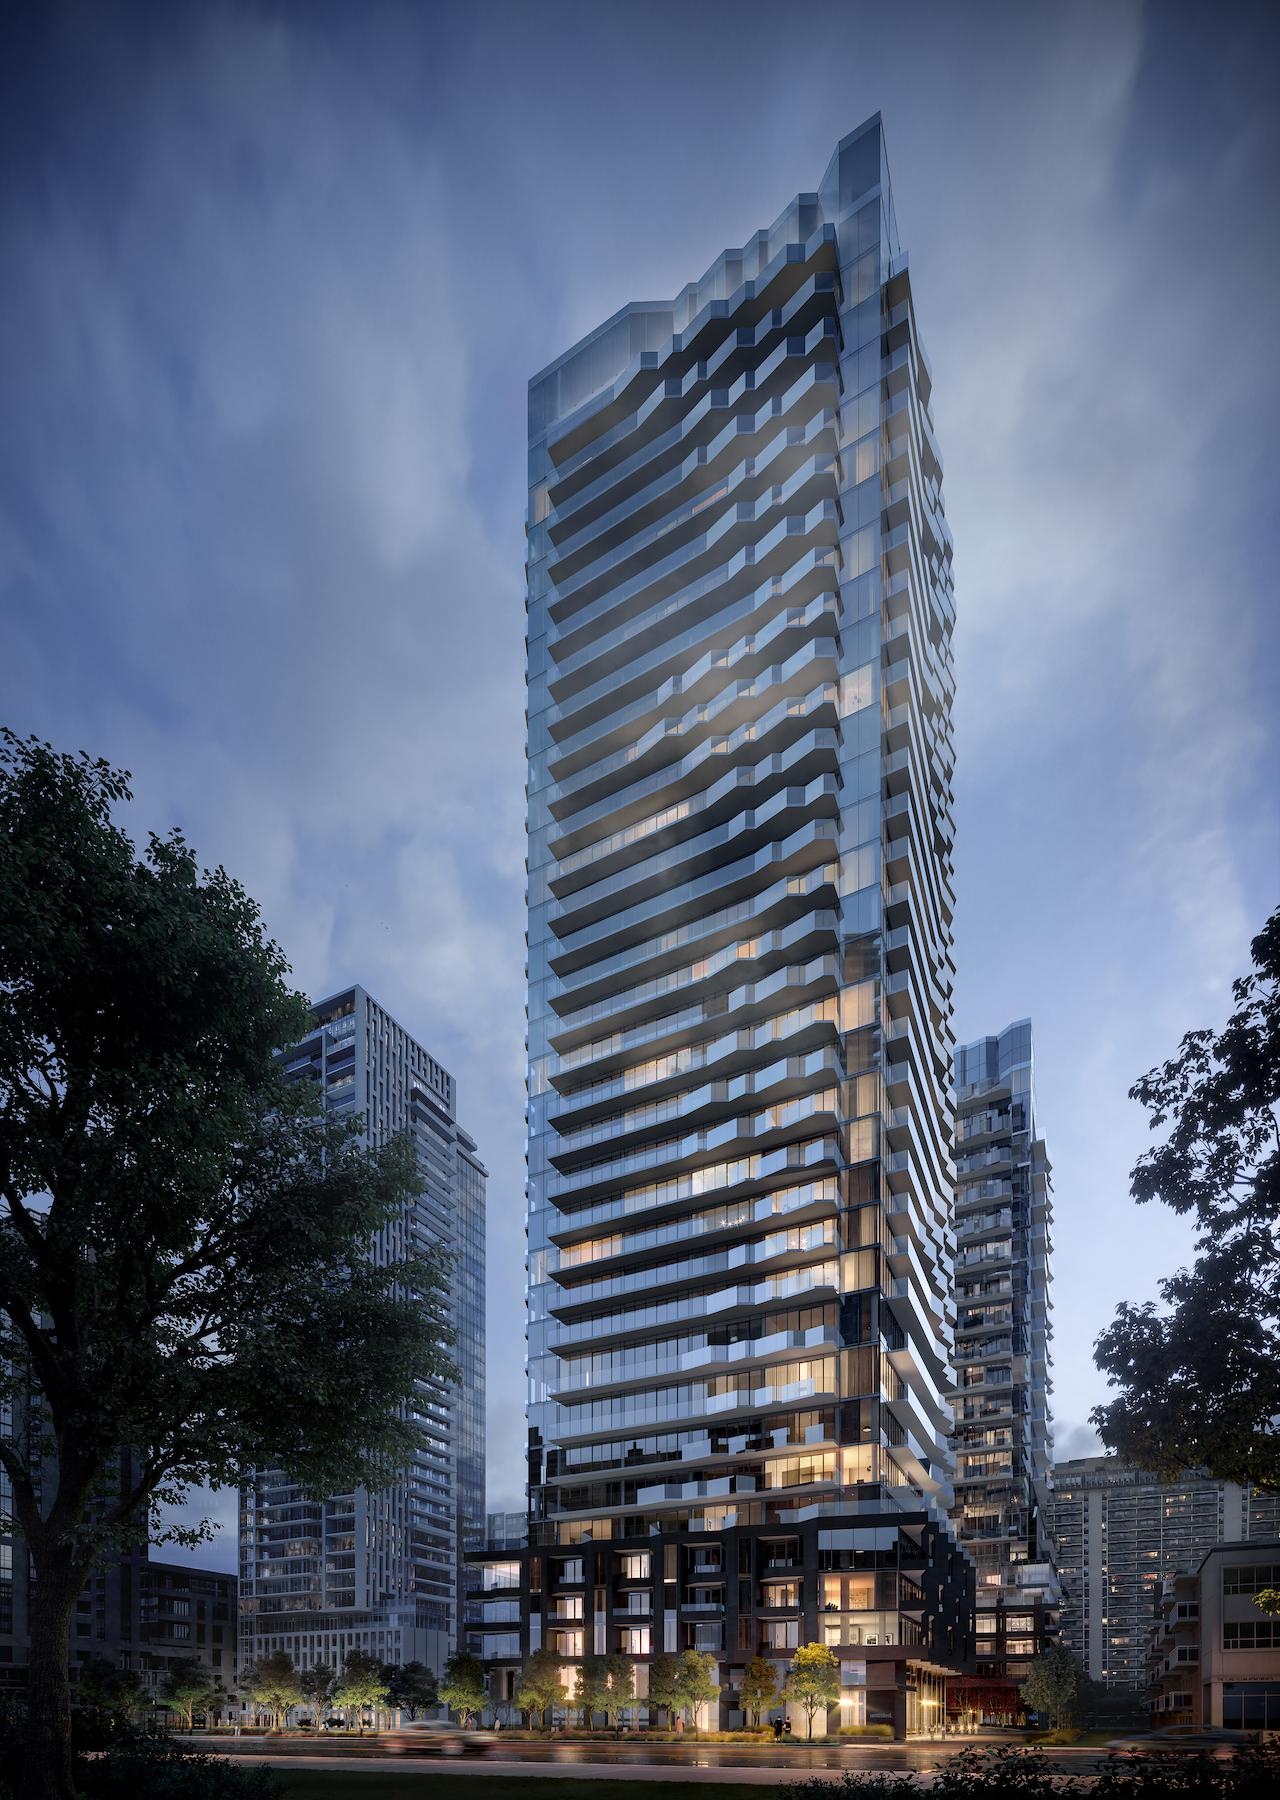 Untitled Toronto, designed by IBI Group for Reserve Properties and Westdale Properties